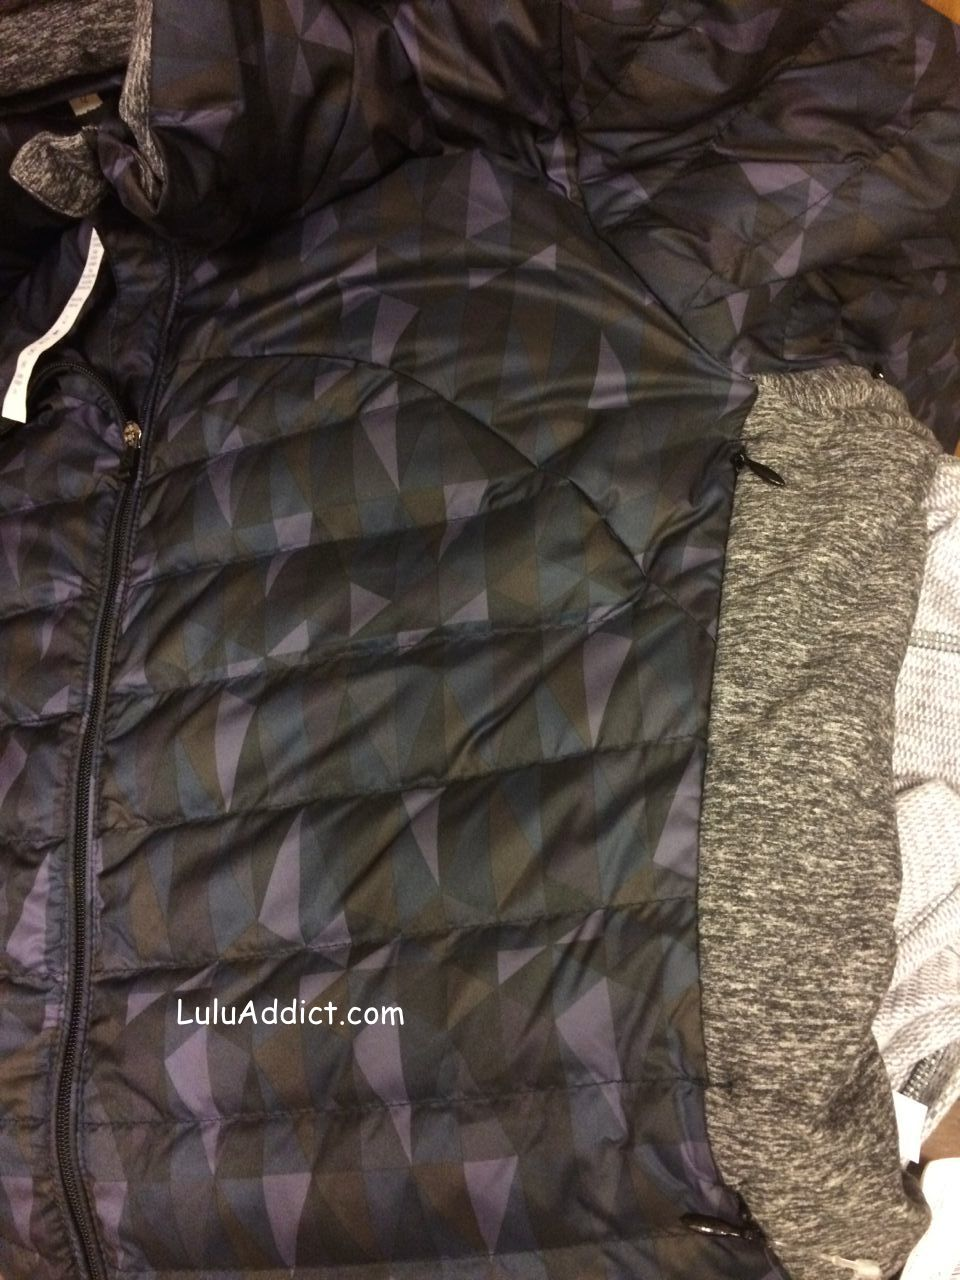 lululemon fluff off jacket stained glass